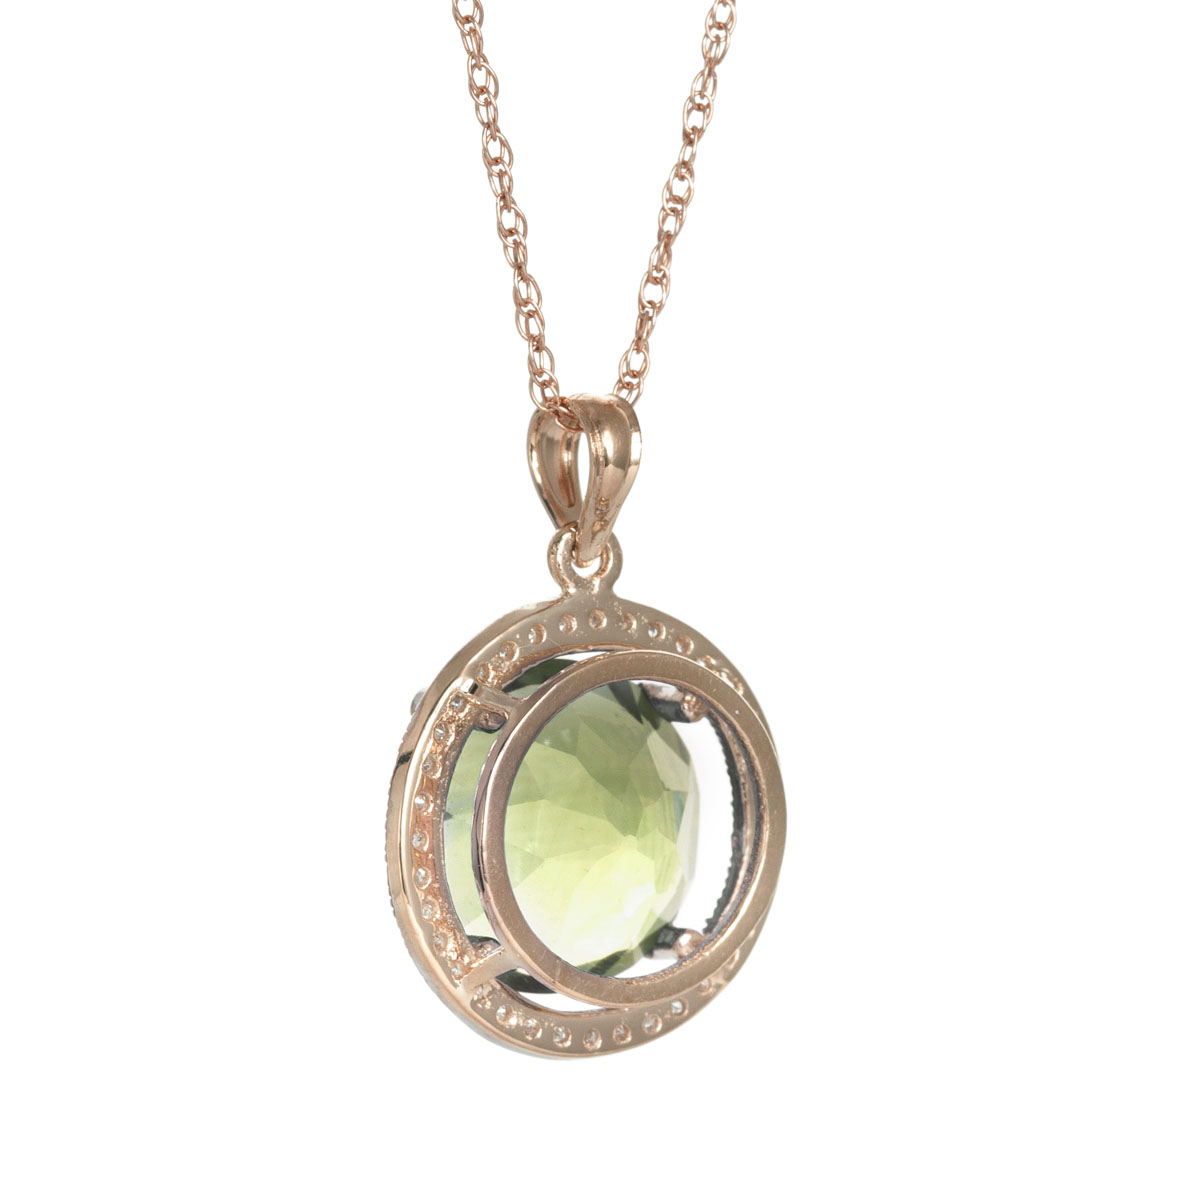 Green Amethyst Halo Pendant Necklace 5.2 ctw in 9ct Rose Gold